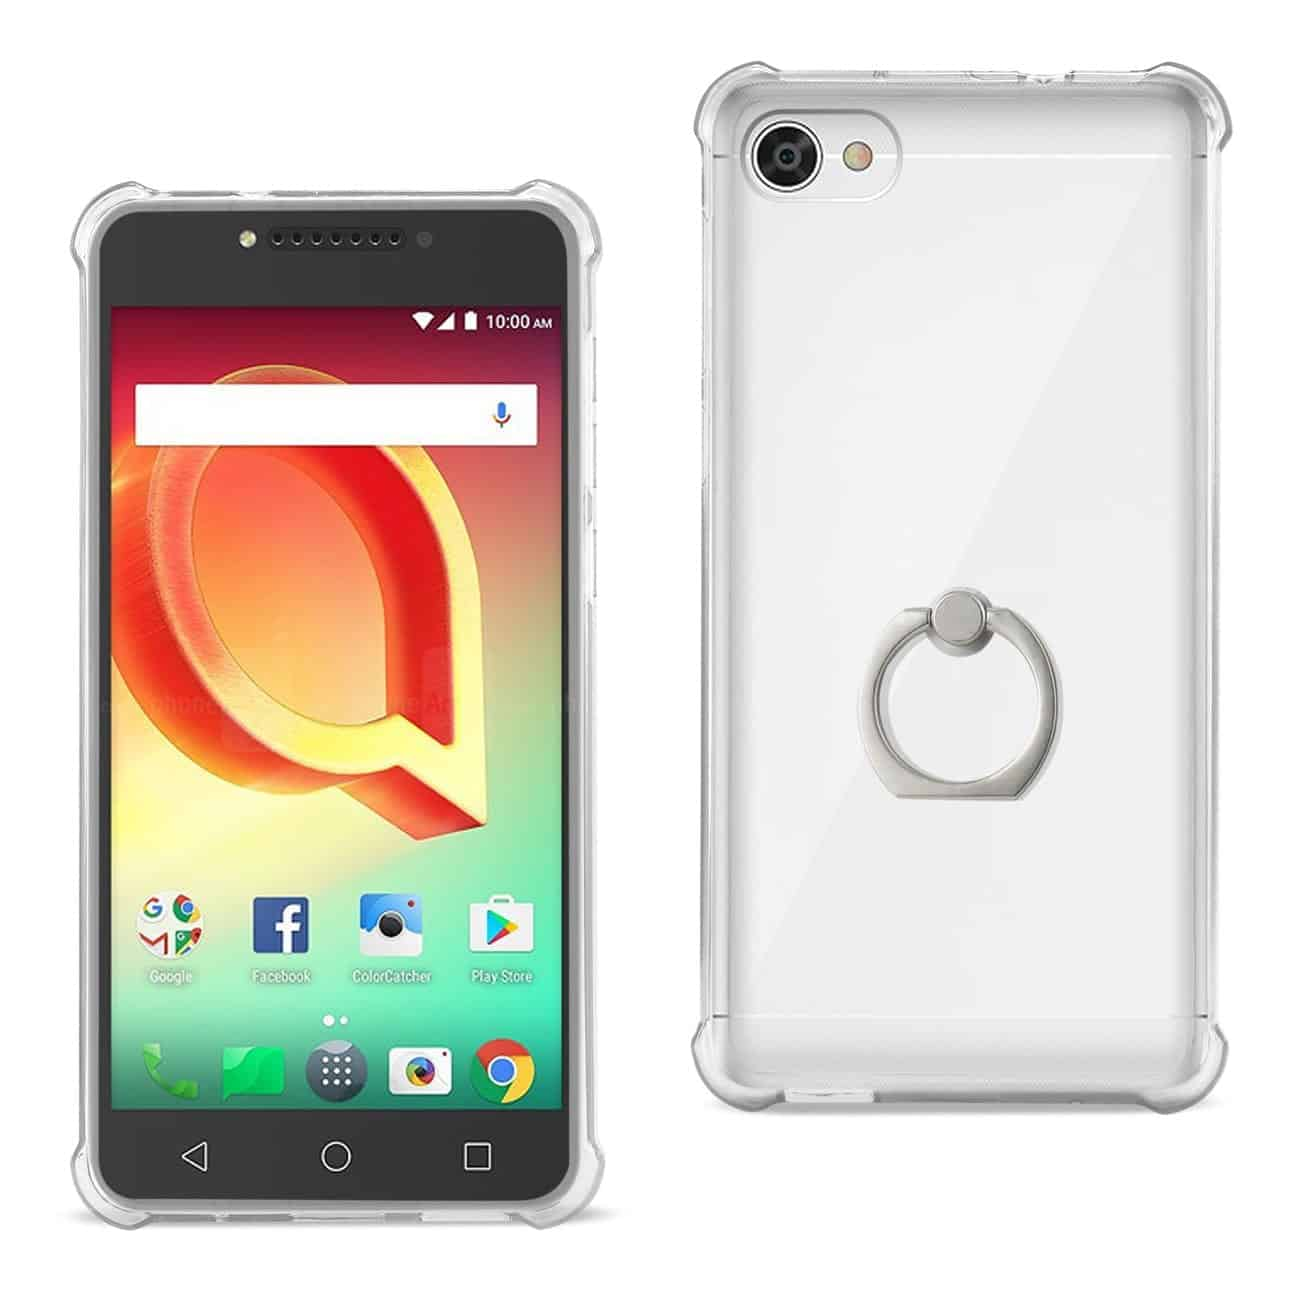 ALCATEL CRAVE TRANSPARENT AIR CUSHION PROTECTOR BUMPER CASE WITH RING HOLDER IN CLEAR